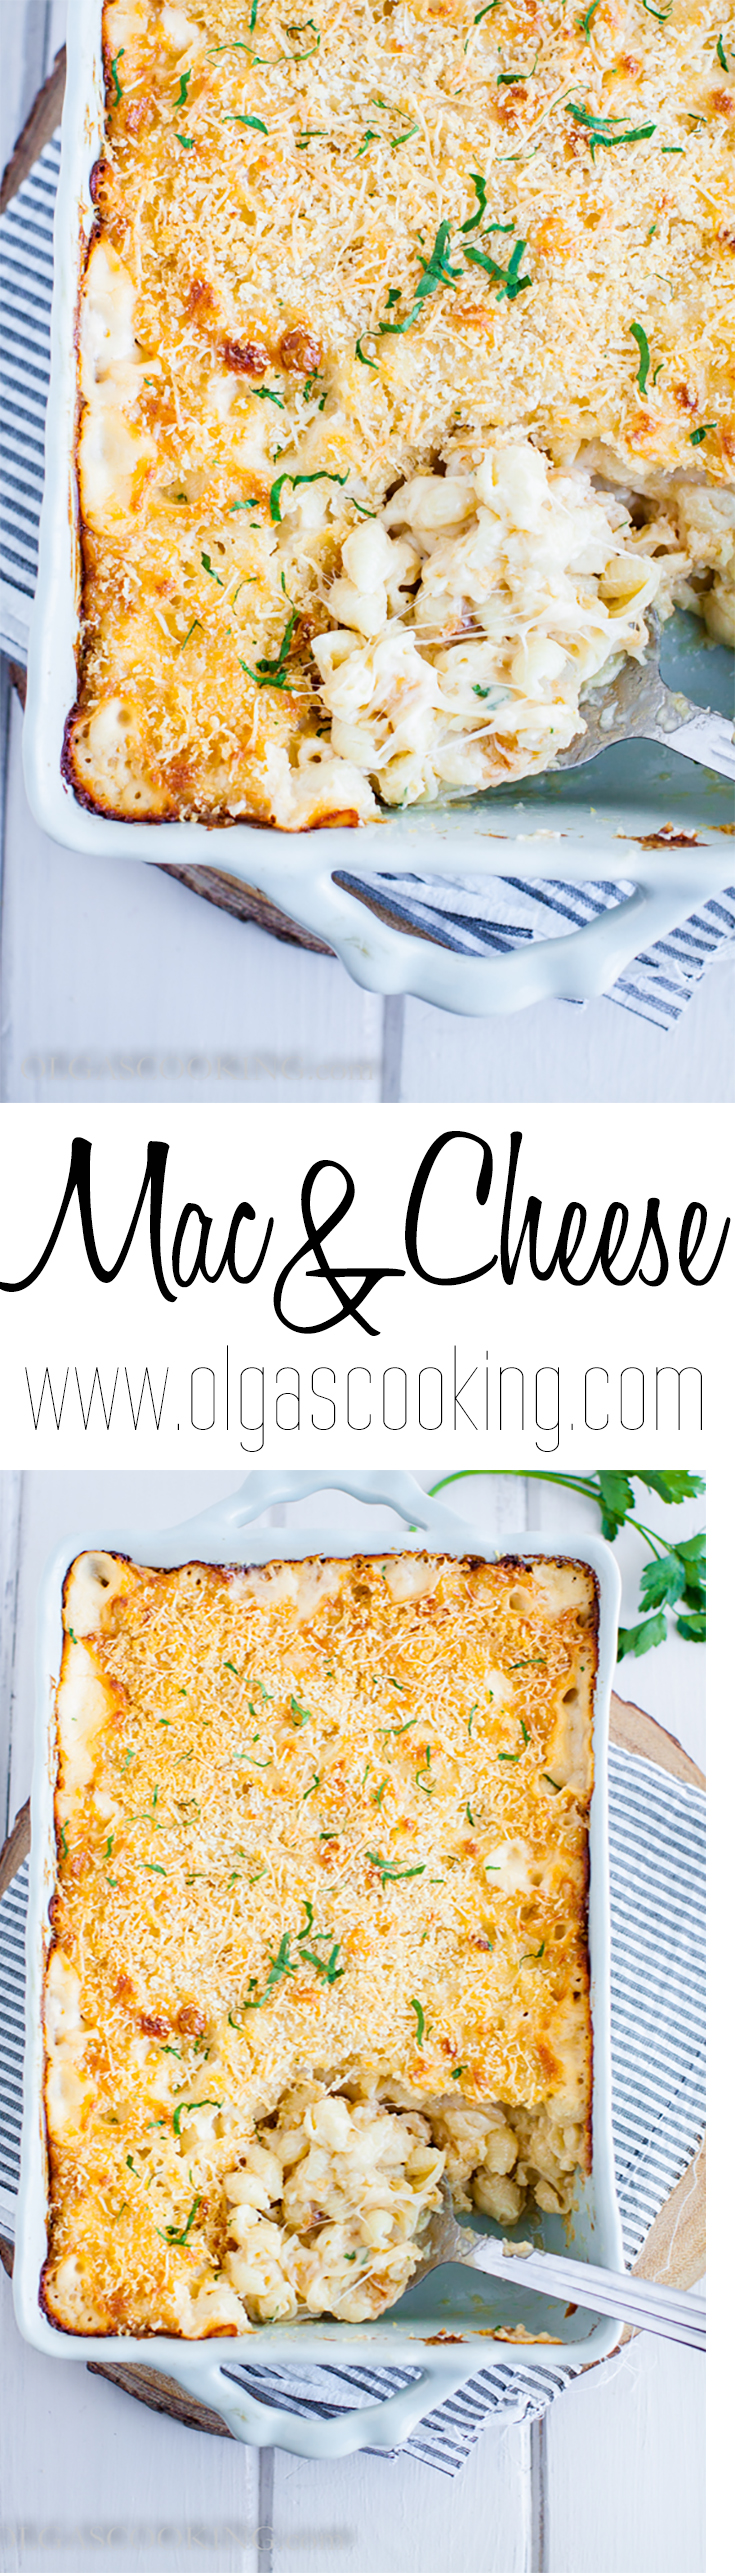 Mac and Cheese recipe with homemade Alfredo sauce. To die for!